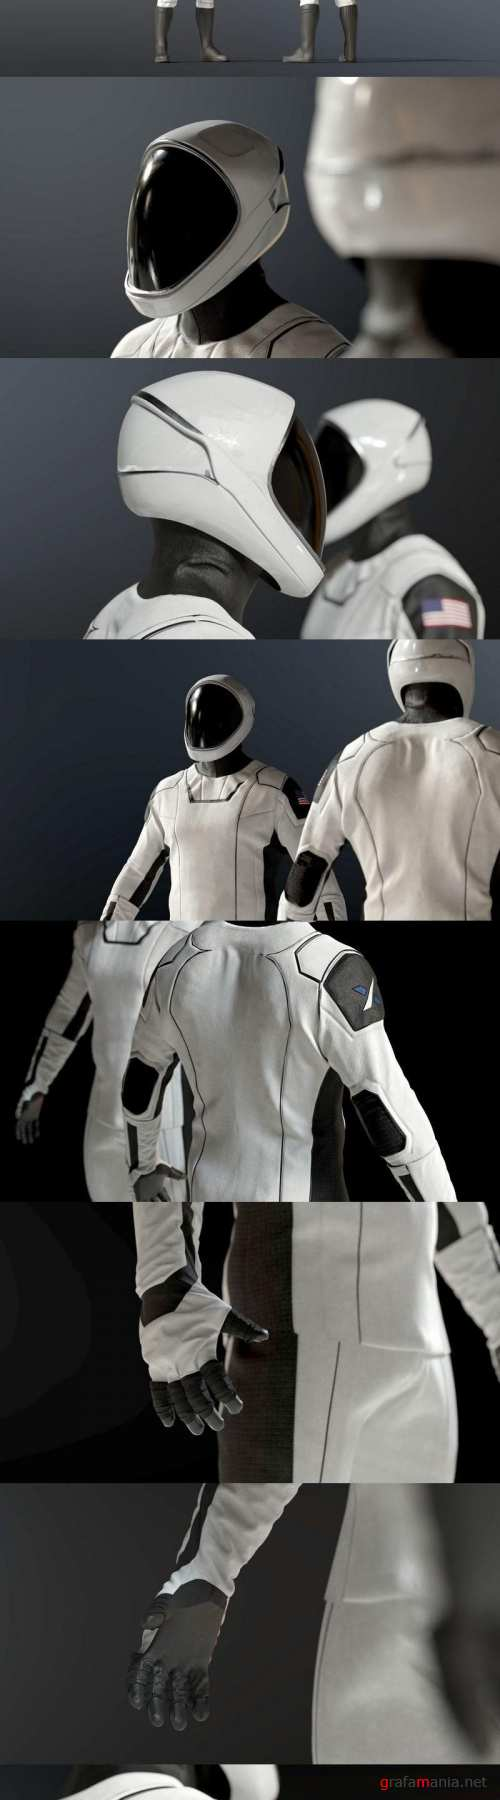 SPACESUIT SpaceX Dragon Starman